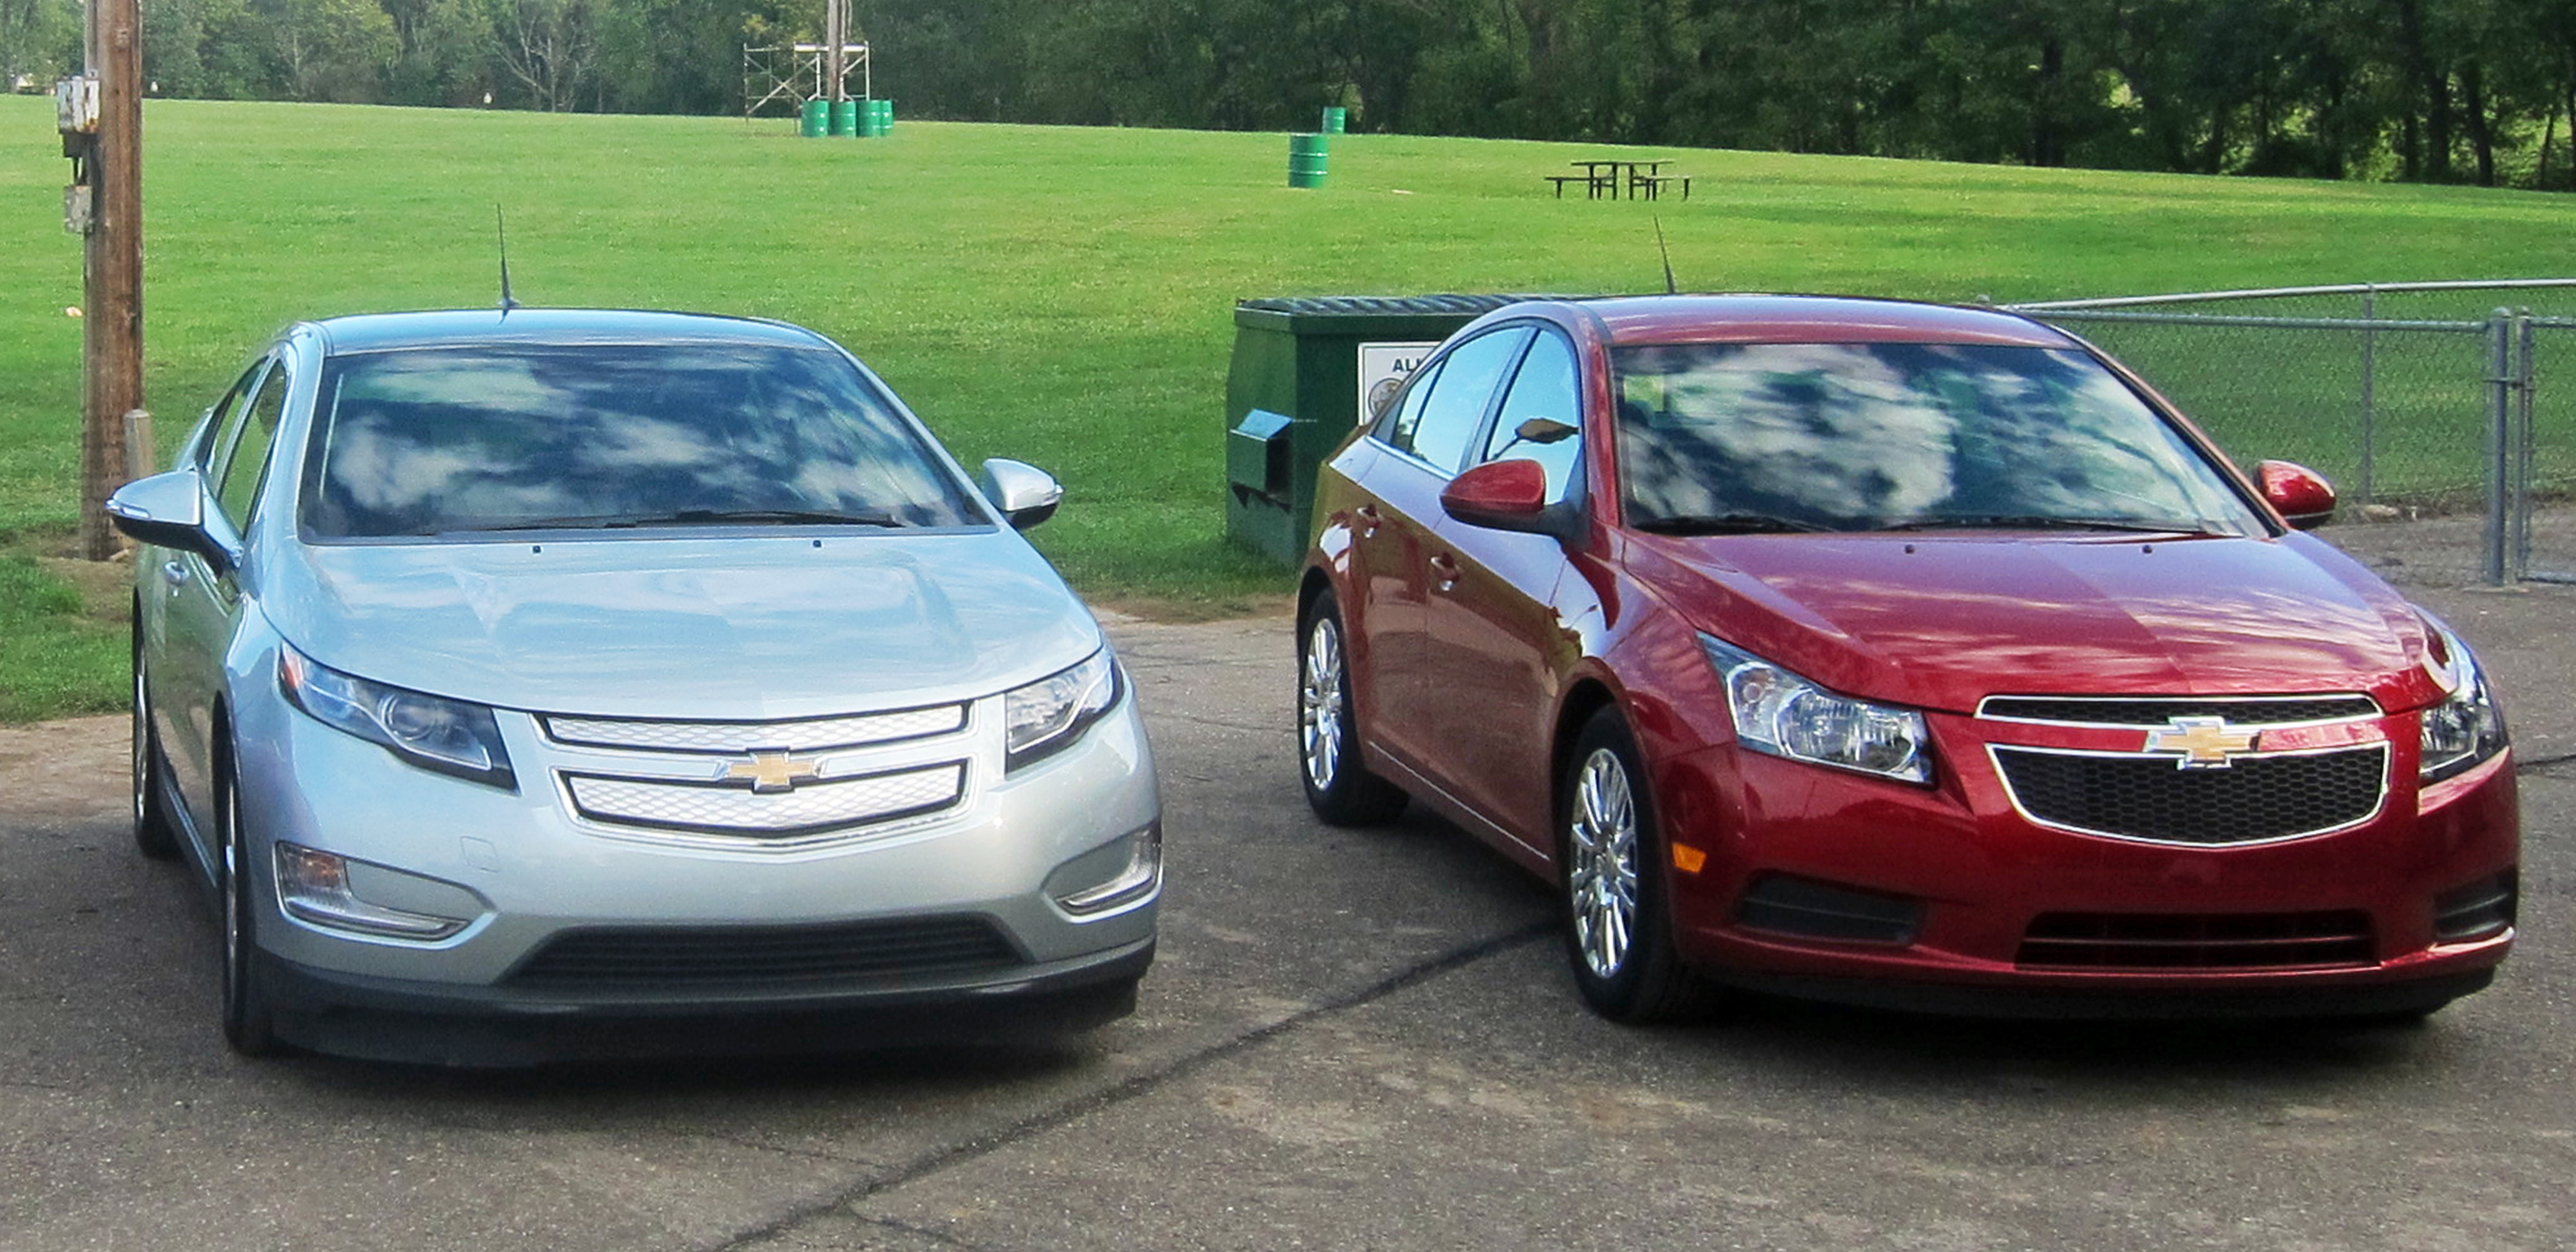 file chevy volt and cruze eco wikimedia commons. Black Bedroom Furniture Sets. Home Design Ideas